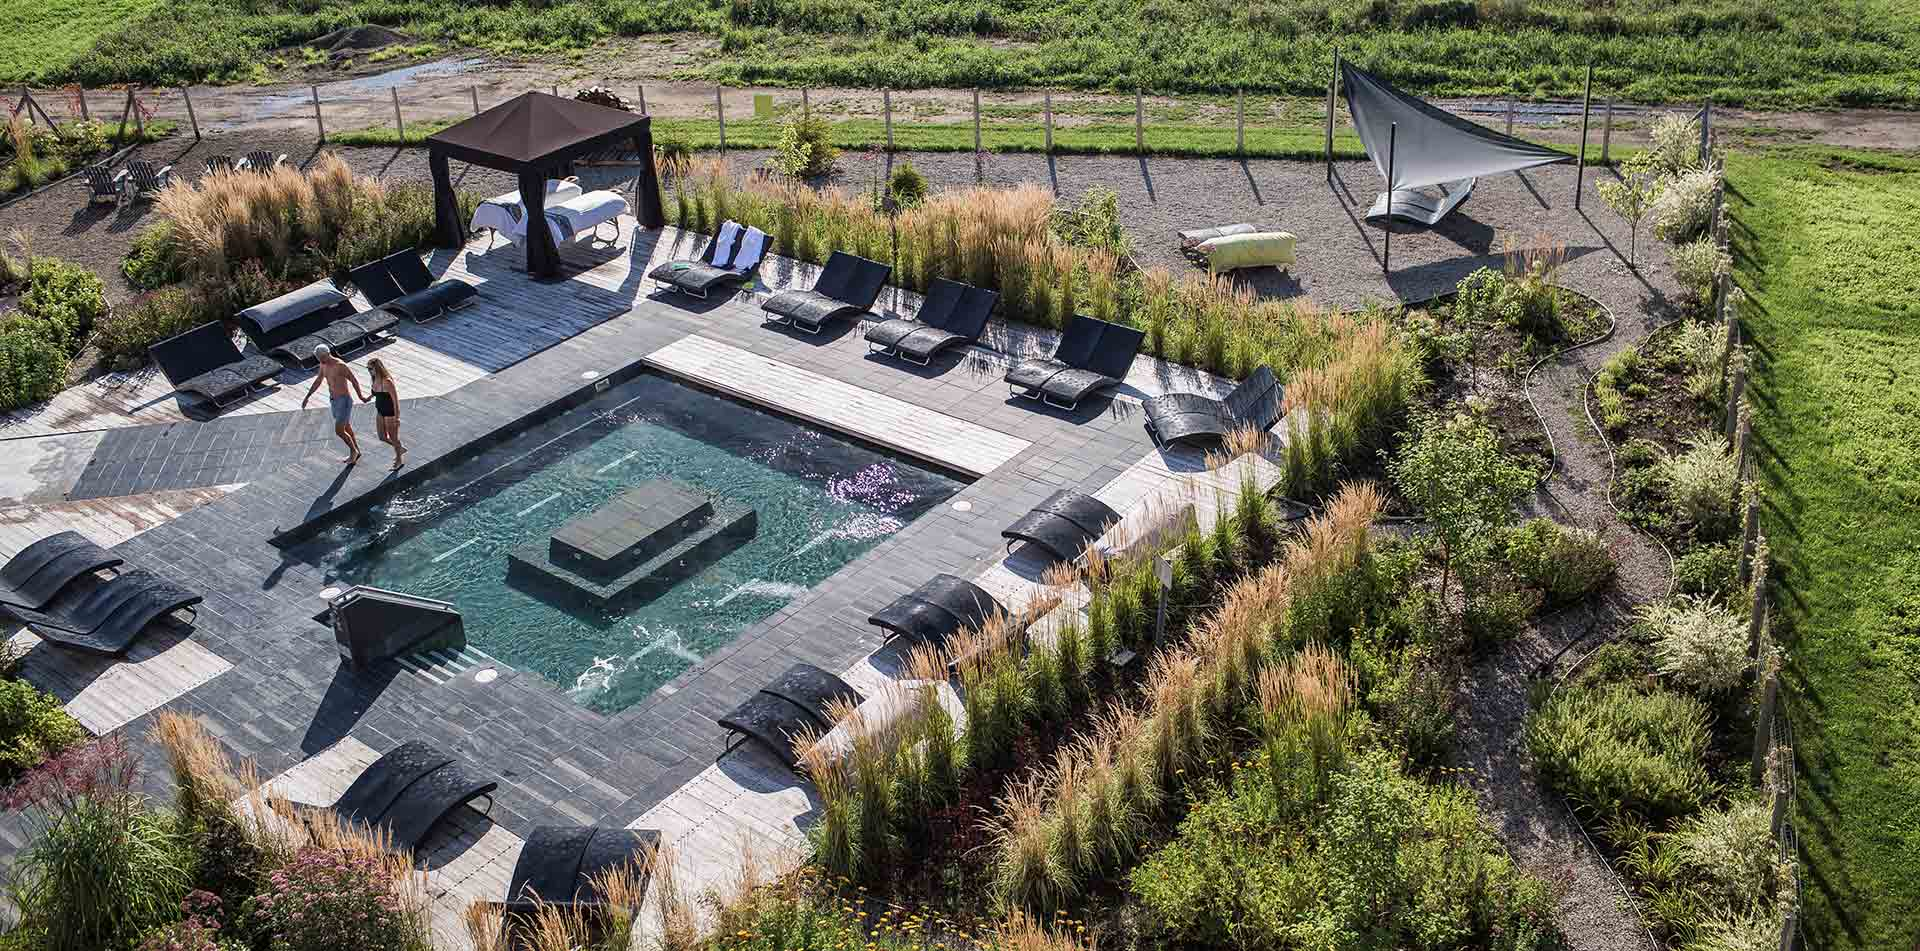 North America Canada Quebec Charlevoix Spa Nordique Le Germain outdoor pool lounge couple - luxury vacation destinations